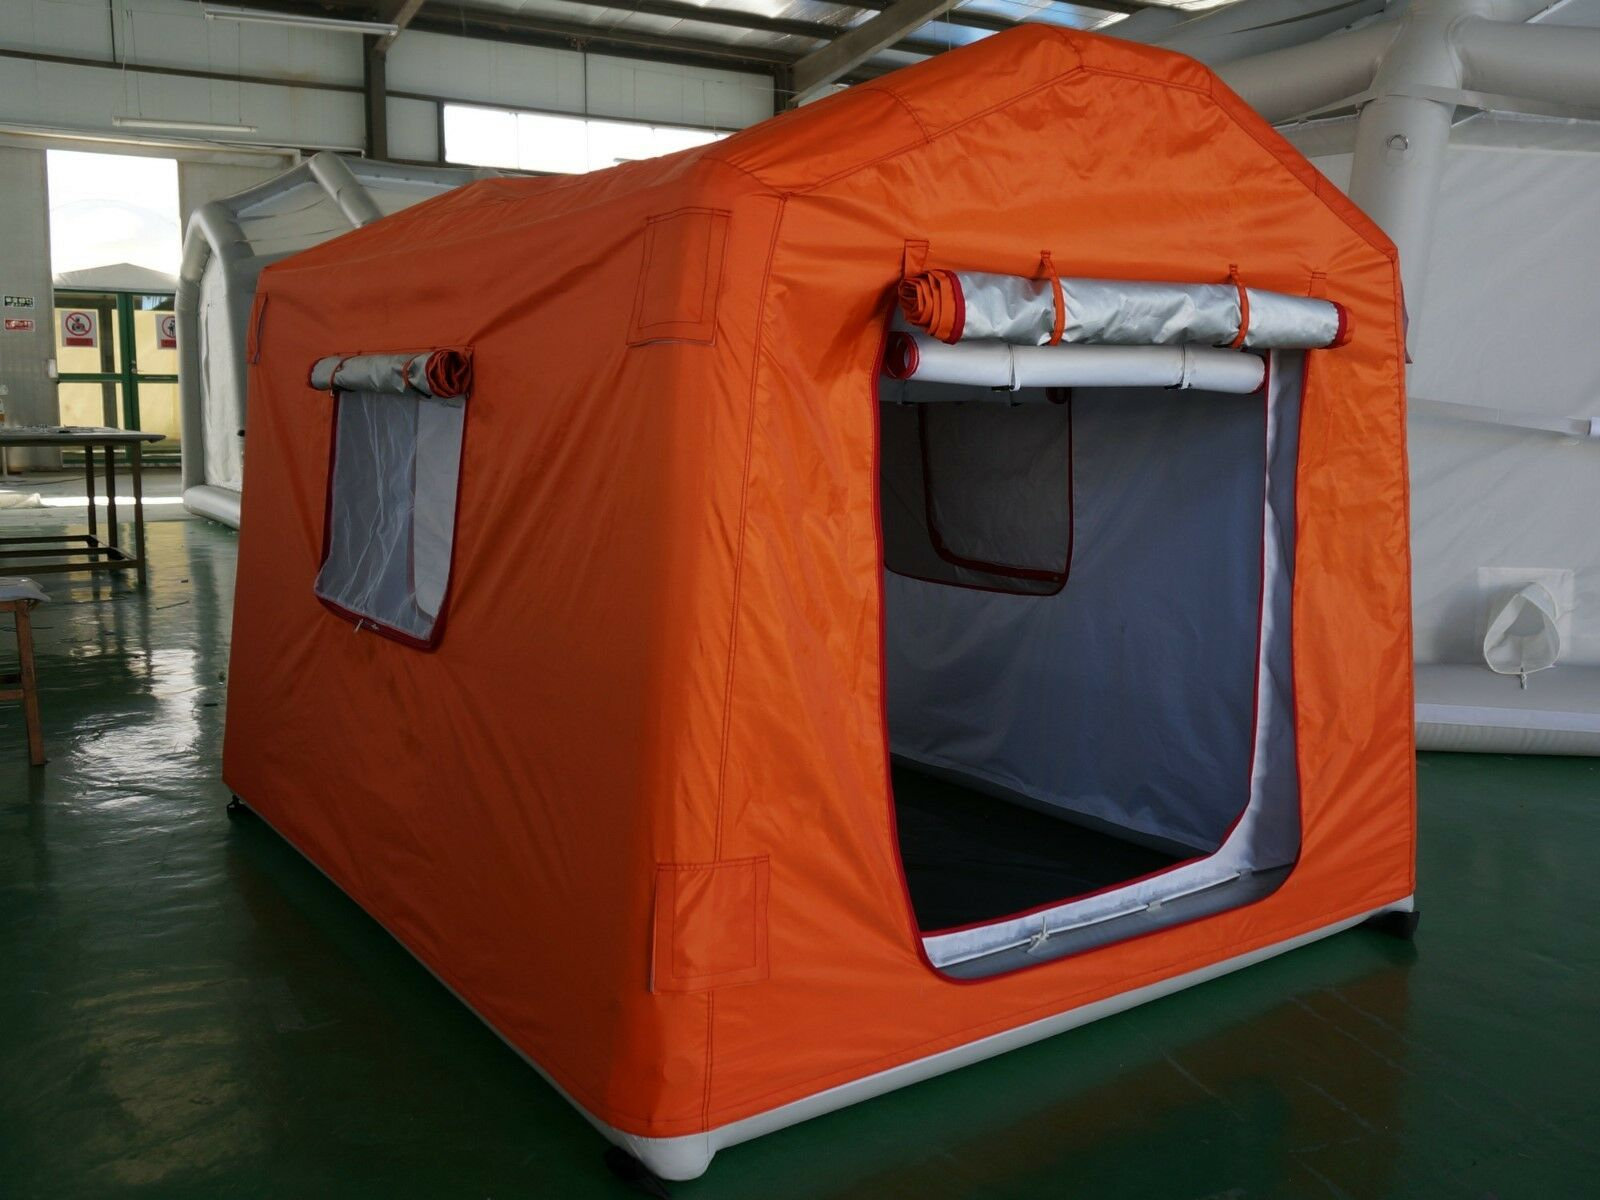 AIR TIGHT WATERPROOF Inflatable Family Camping Tent Recreation Tent Camping W/ Pump Brand NEW 04b84d